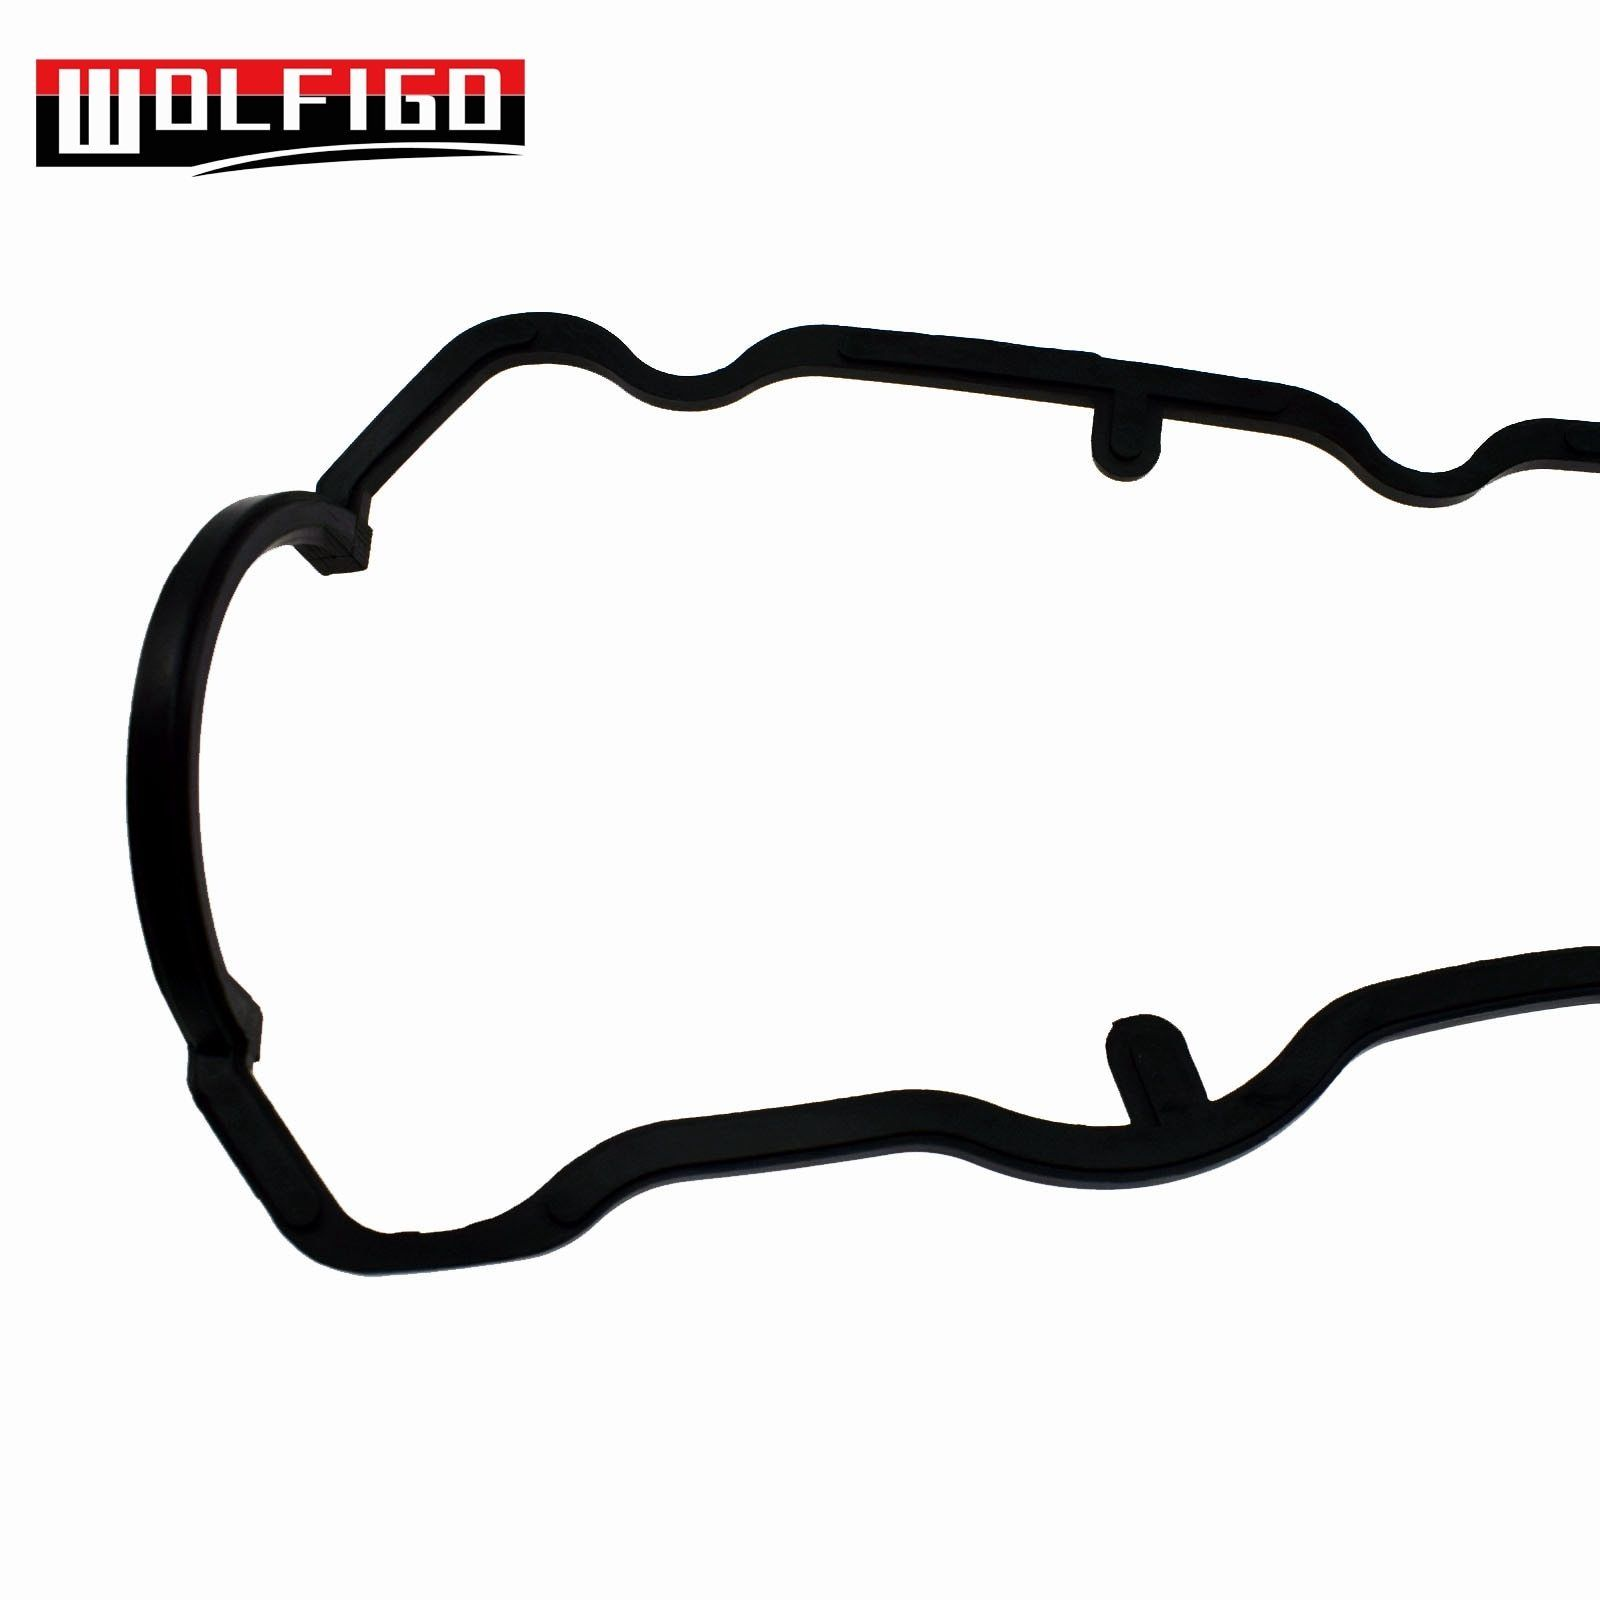 hight resolution of wolfigo for vw beetle golf jetta tdi 1 9 engine valve cowl gasket 038103469e 038 103 469 e new